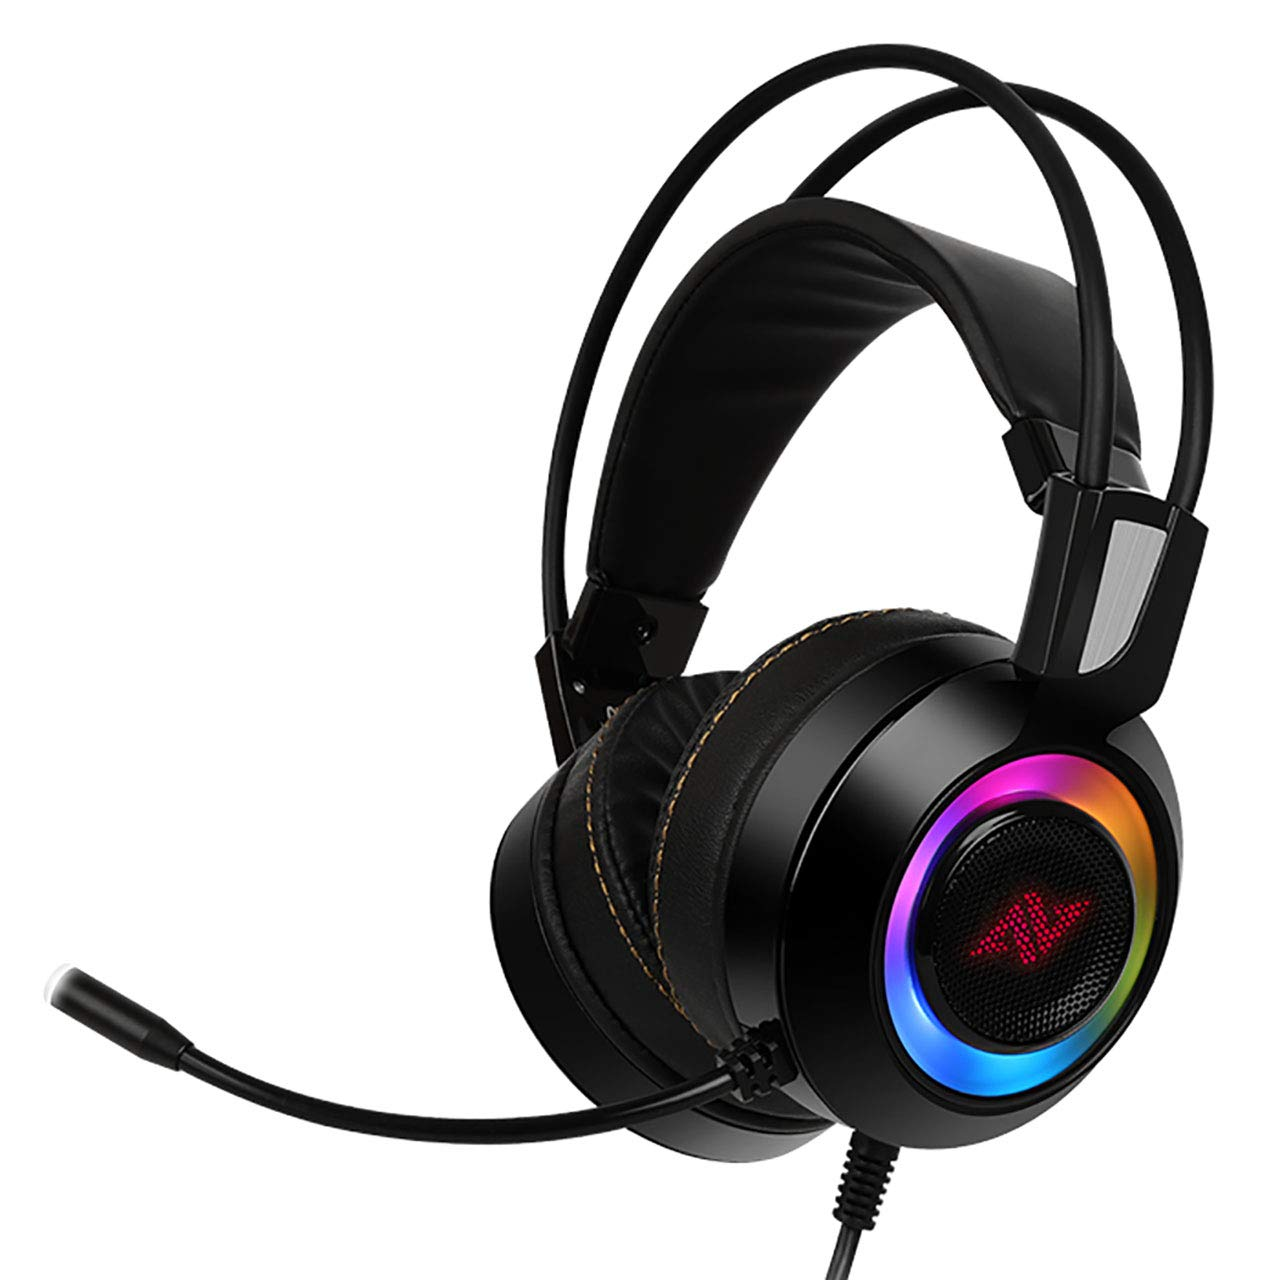 Abkoncore Gaming Headset amazon